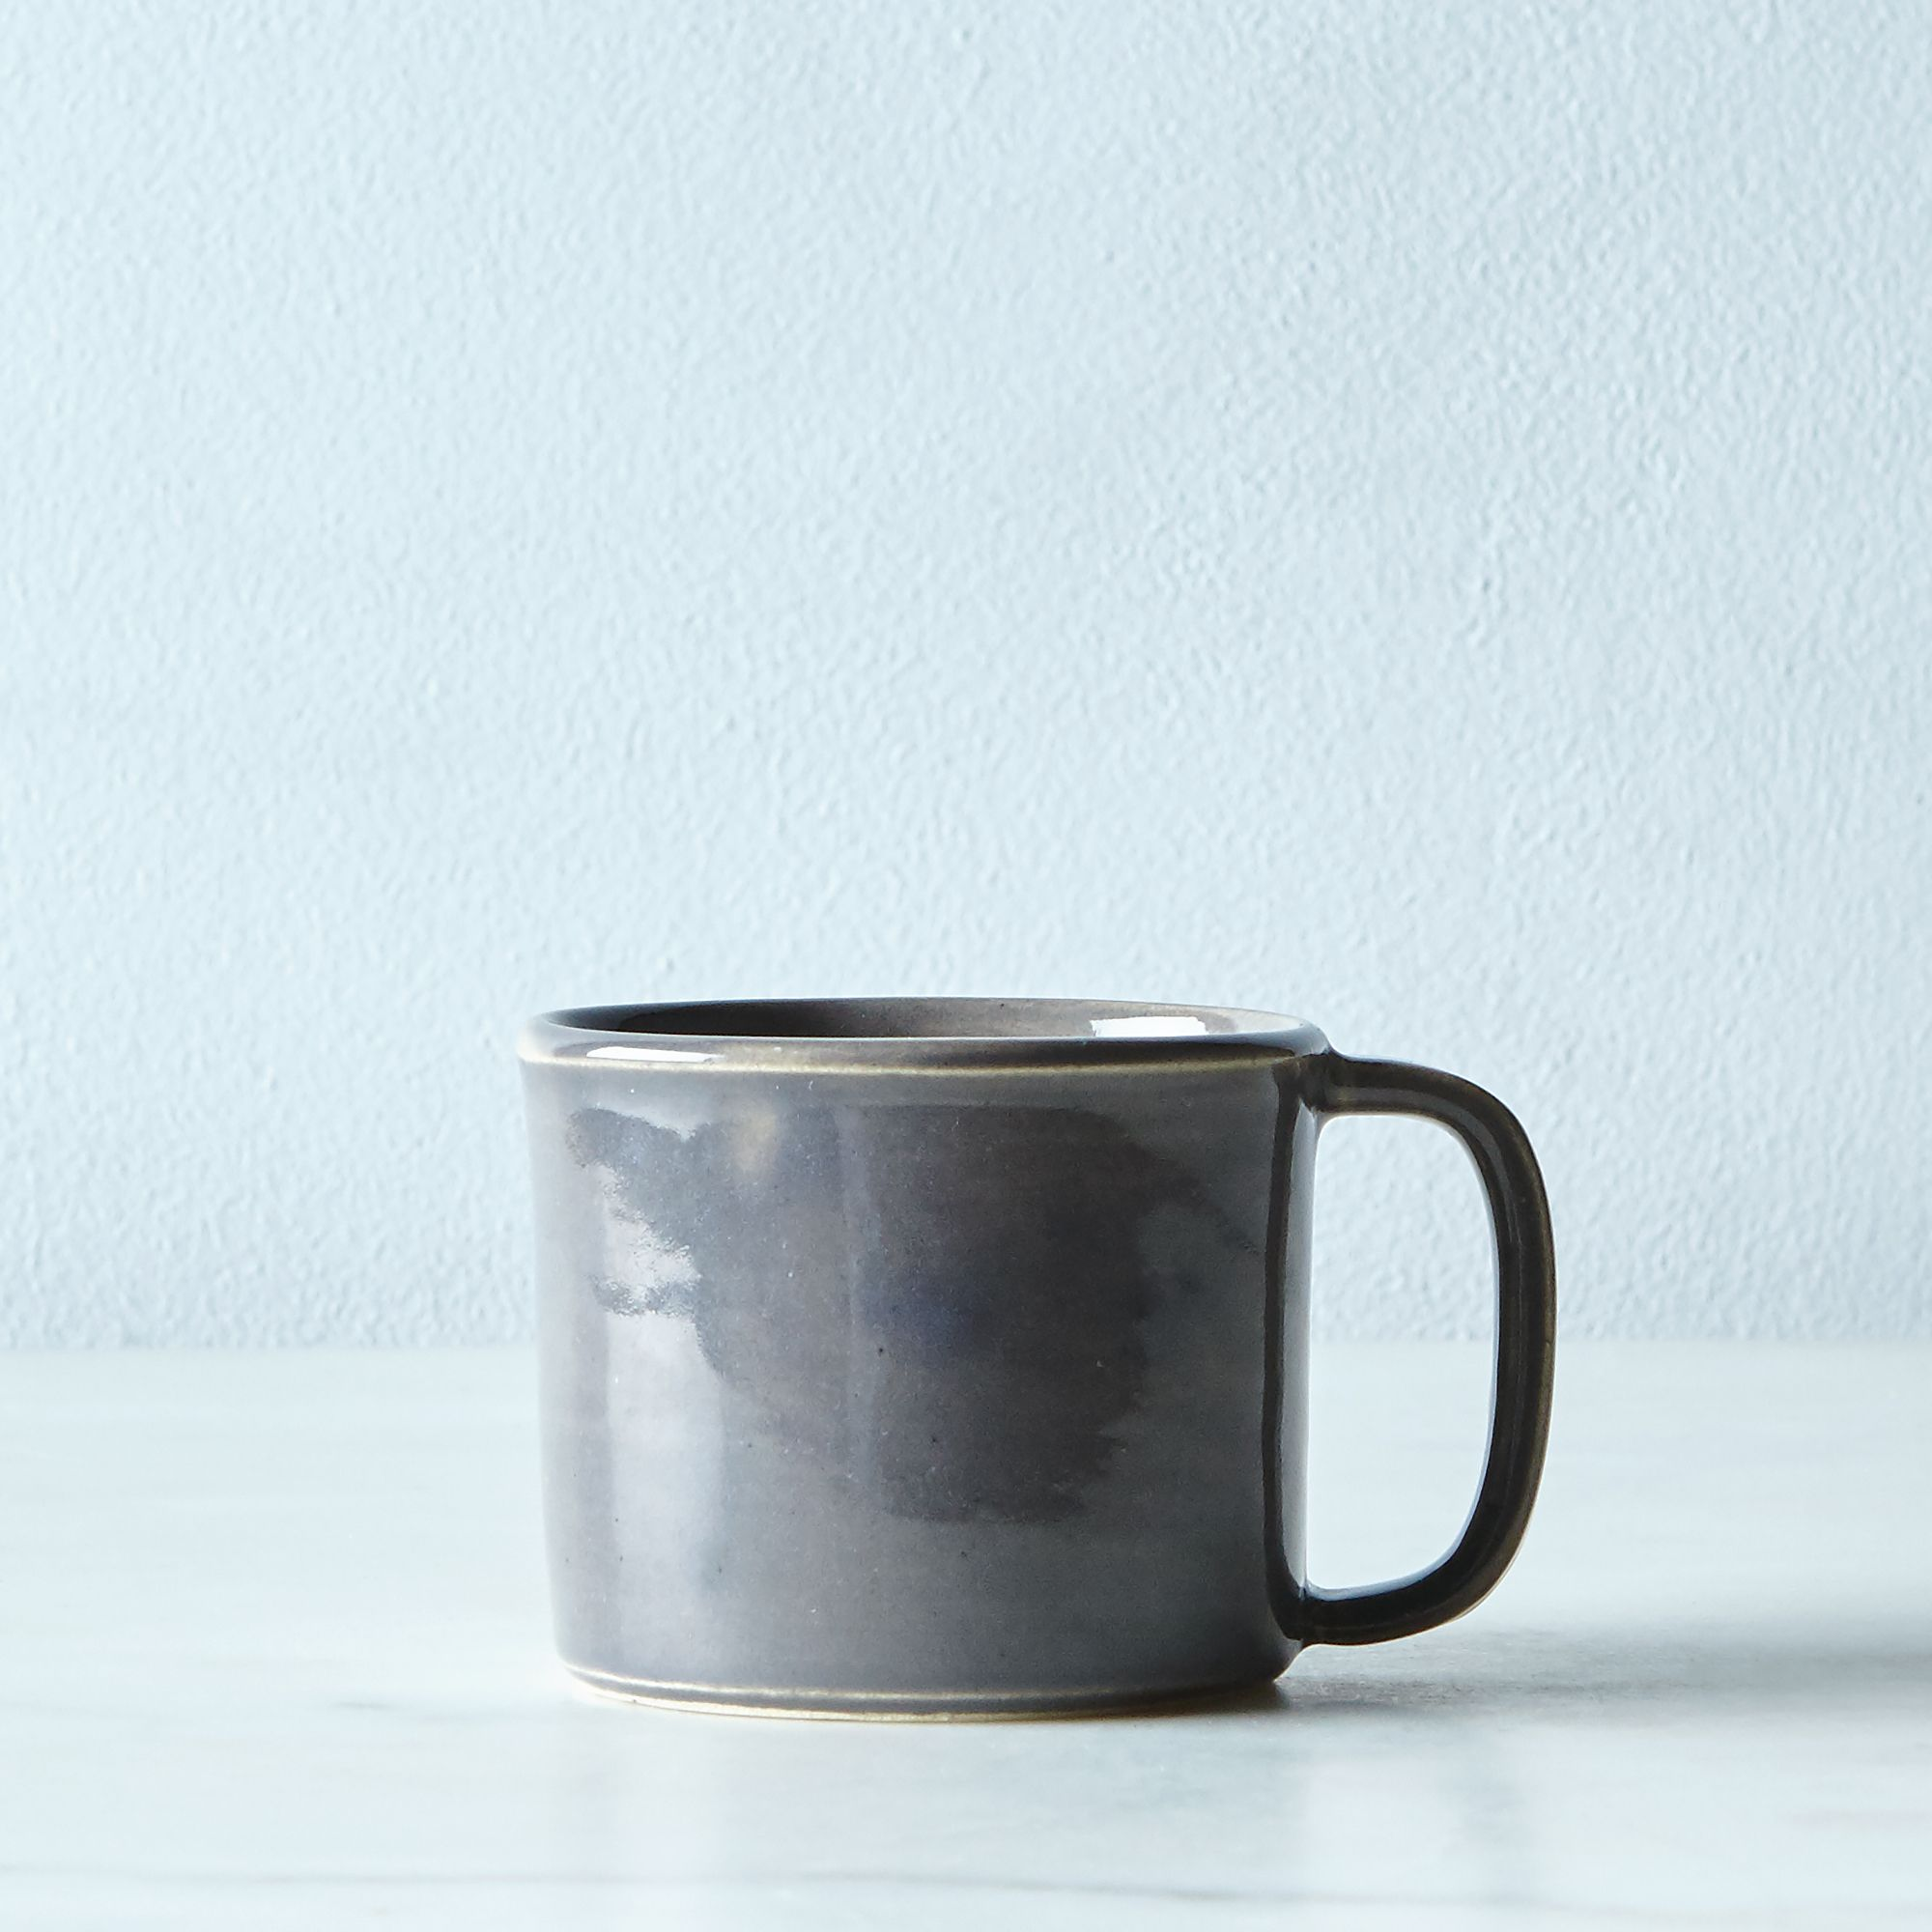 31319e0a a0f9 11e5 a190 0ef7535729df  2015 1104 heirloomed ceramic tin mini mug gray silo rocky luten 003